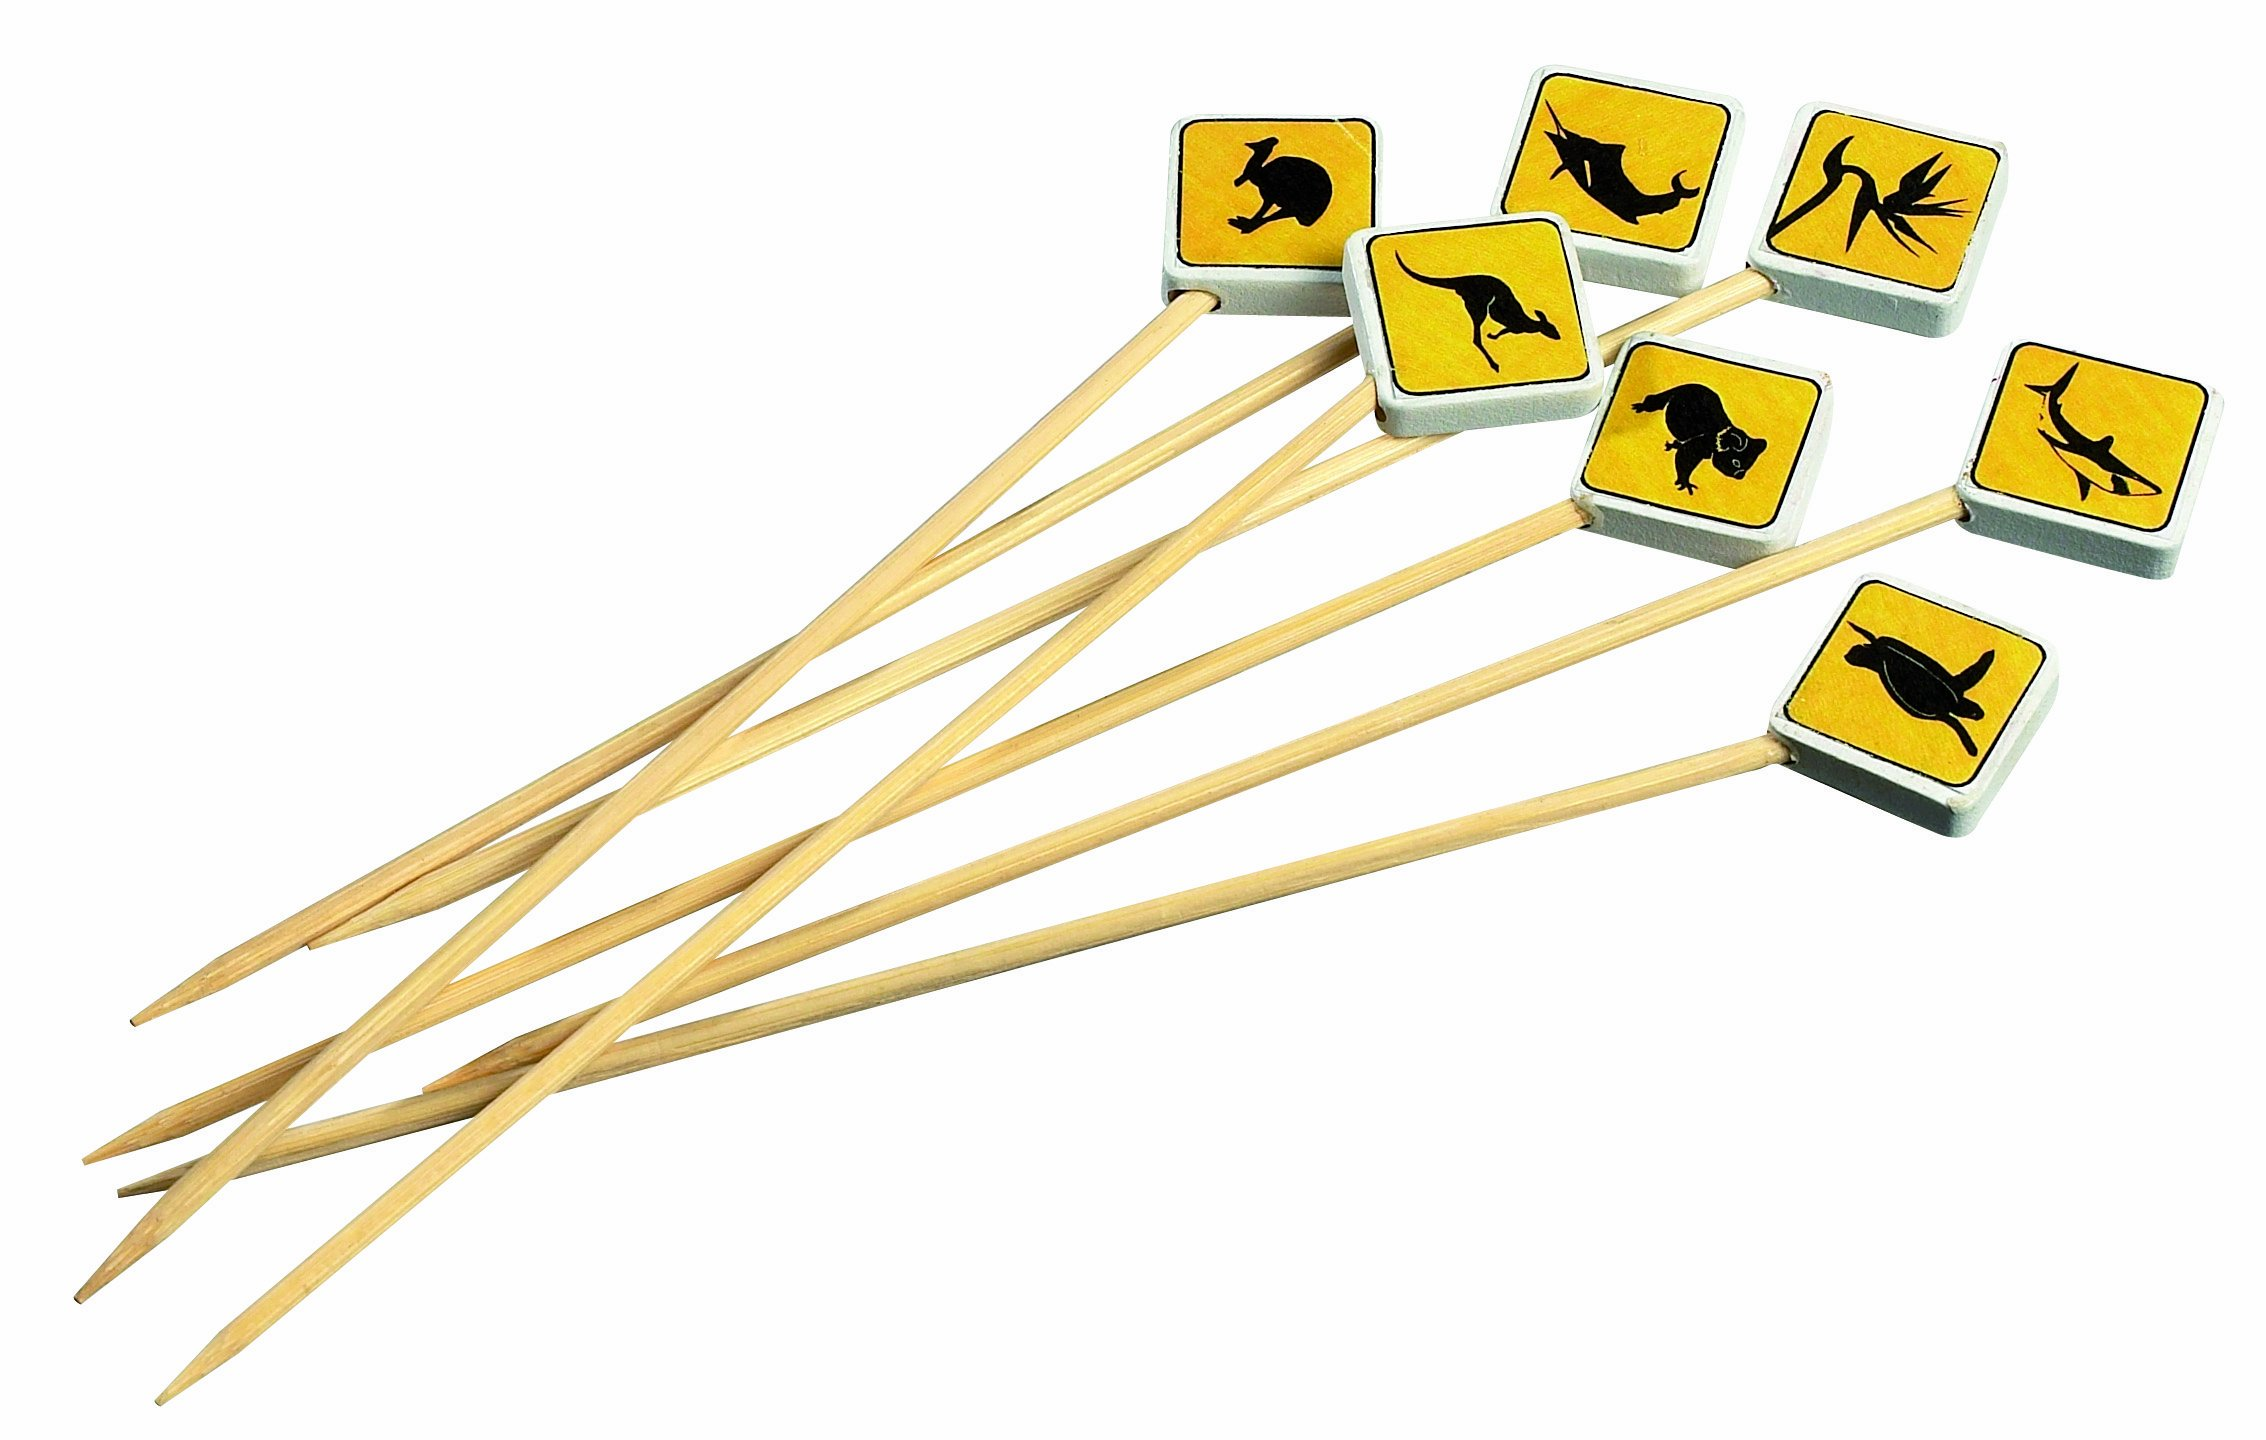 Solia VO11870 Bamboo Road Signs Skewer, 4.7'' Length (Case of 2000)